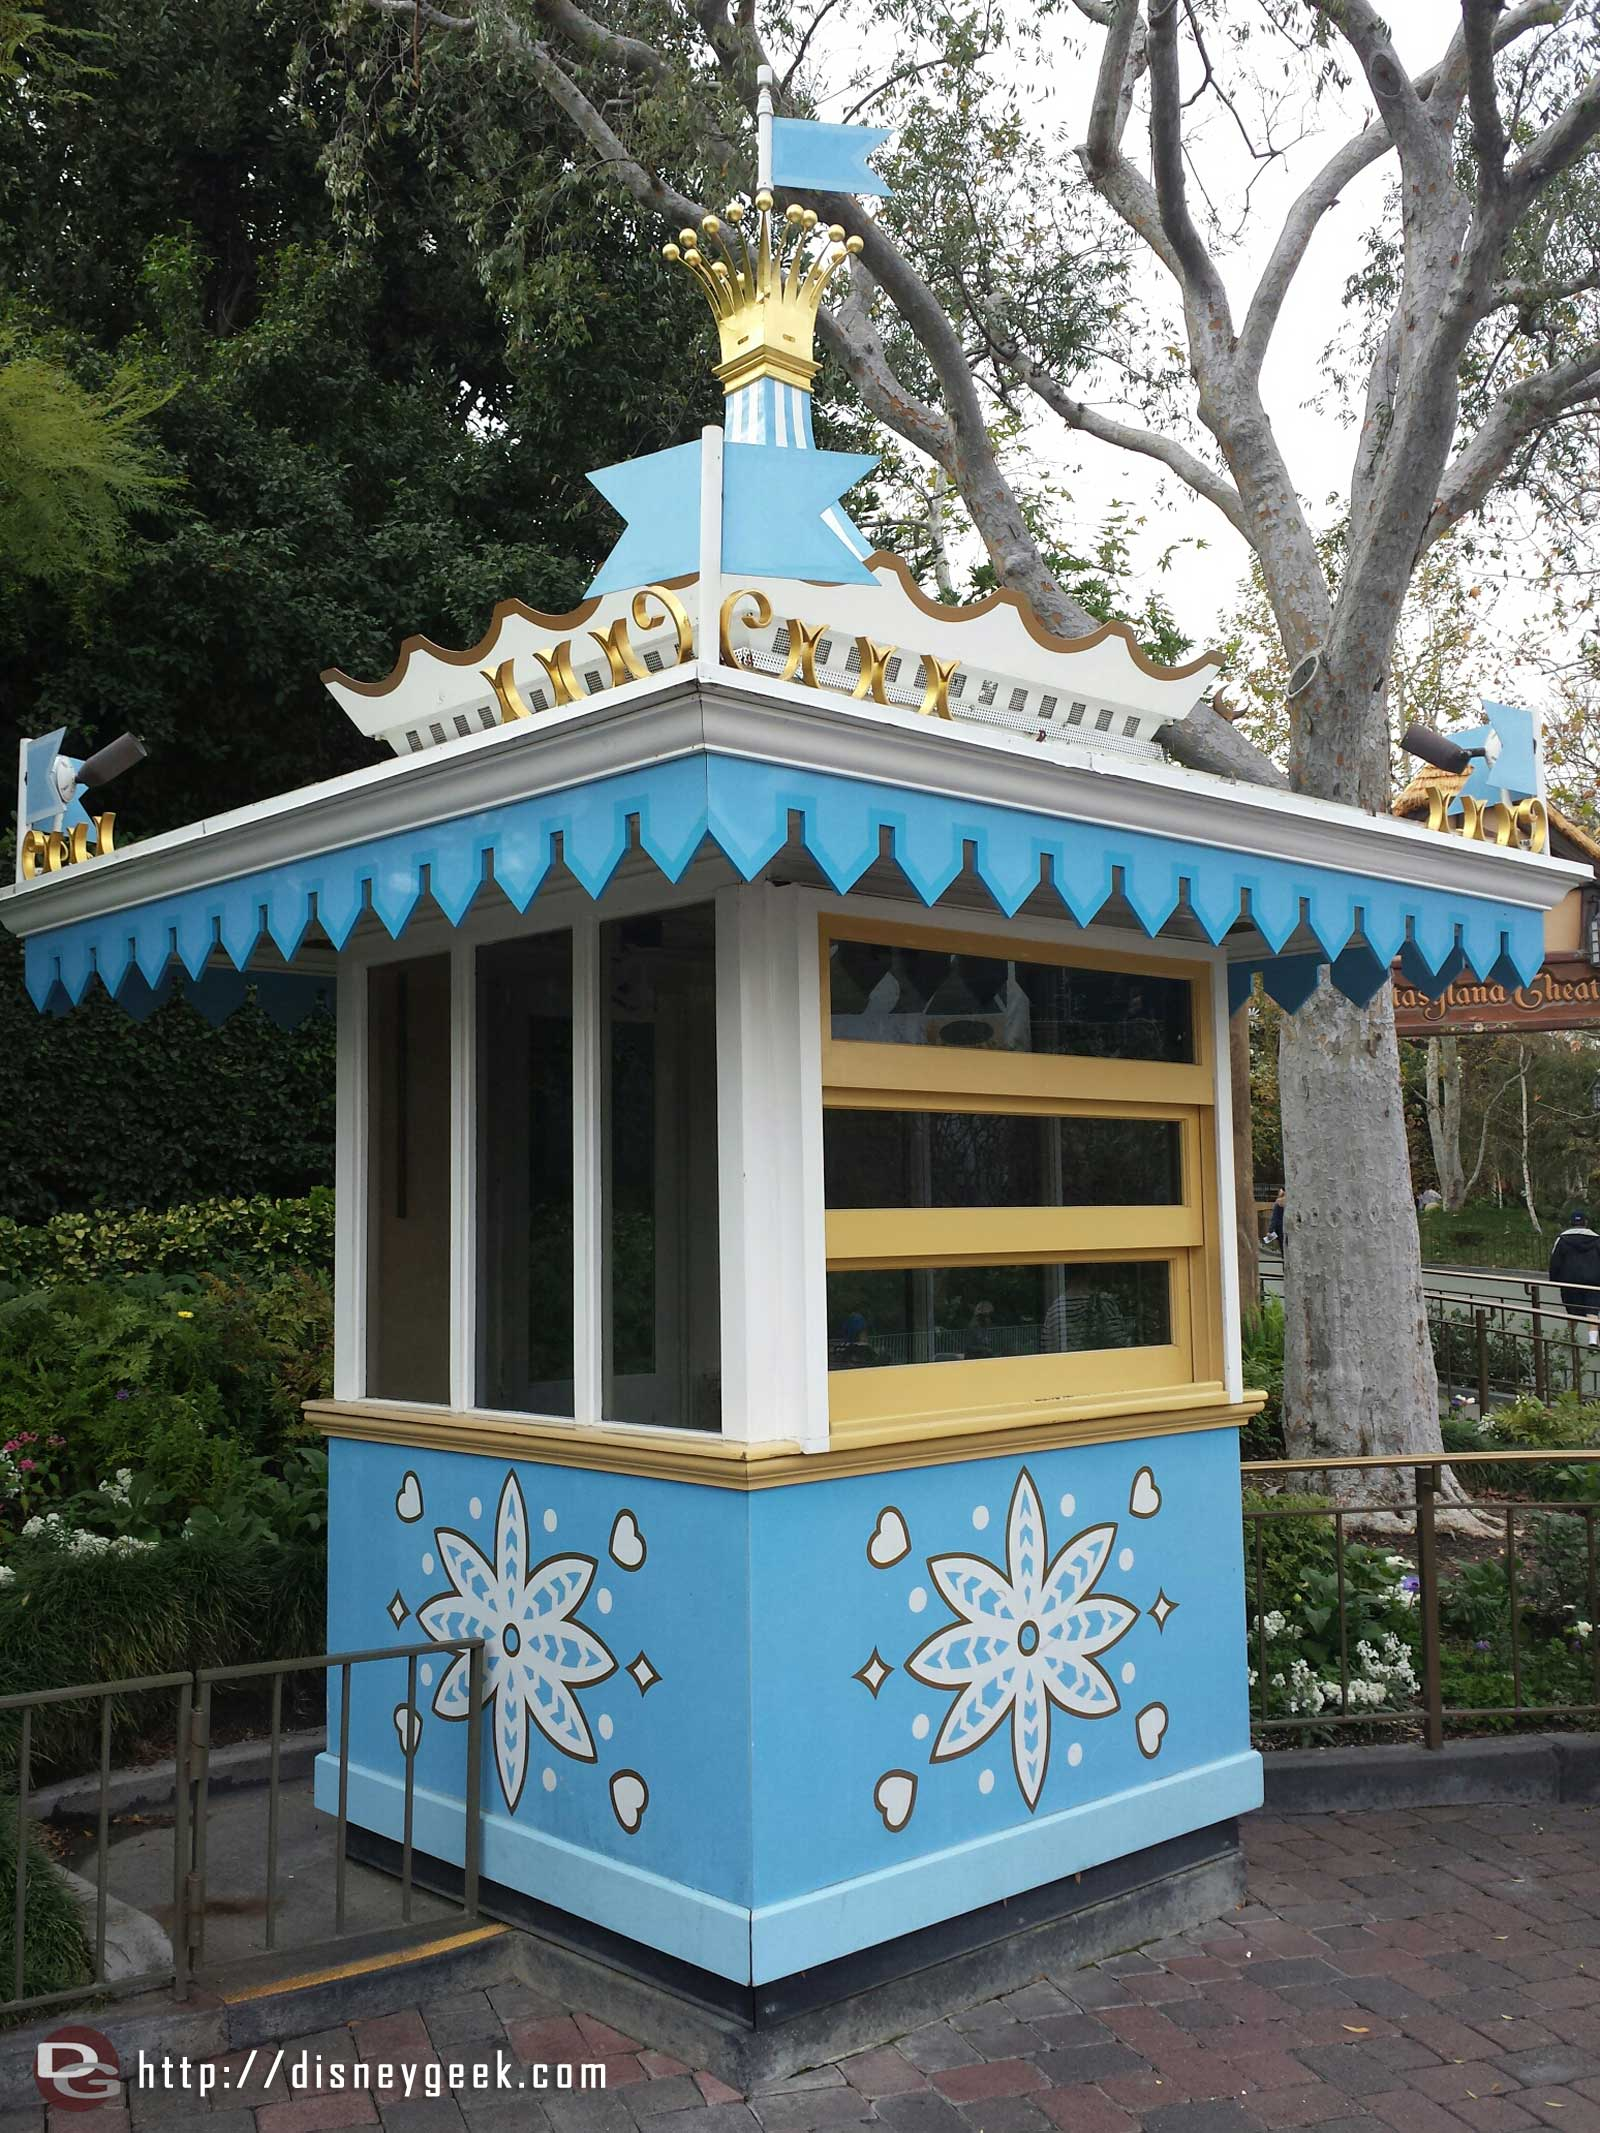 Wonder if there are any plans for this old ticket booth / Kodak kiosk for #Disneyland60 ?